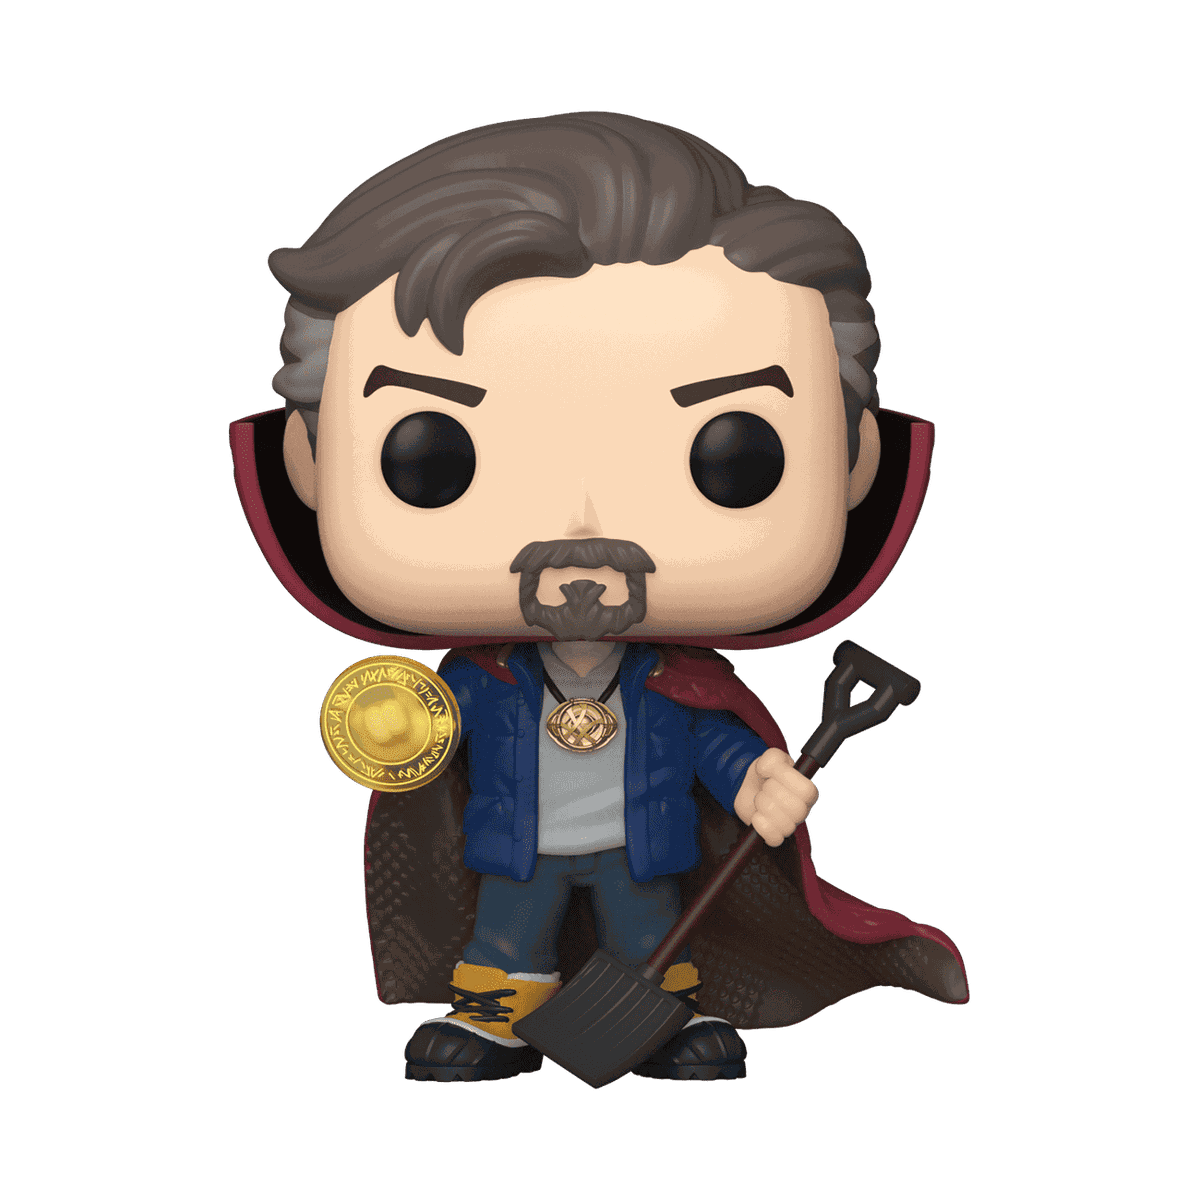 A Funko Pop of Dr. Strange from Spider-Man: No Way Home